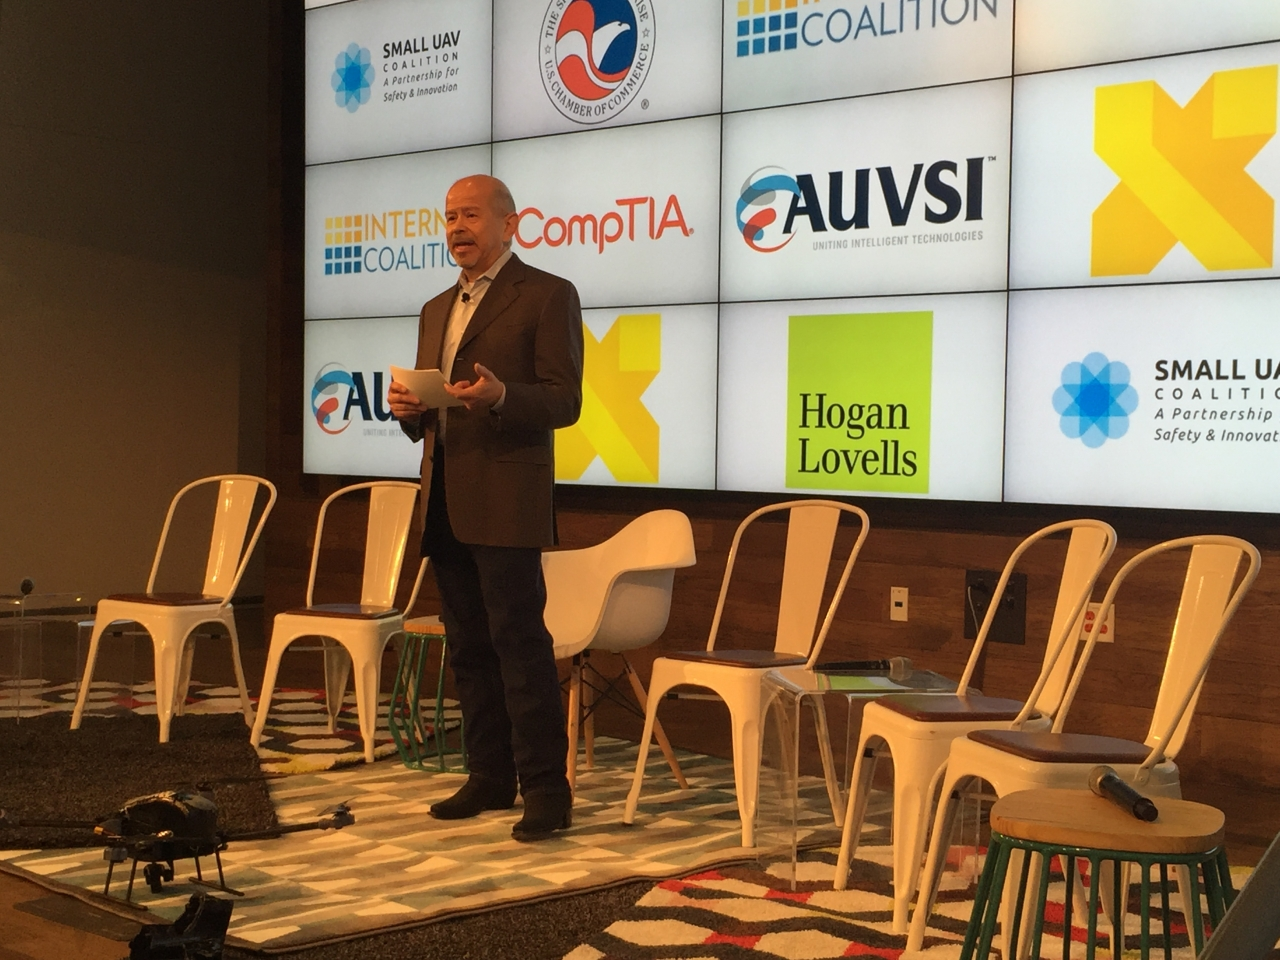 FAA Administrator Huerta speaking at South by Southwest event